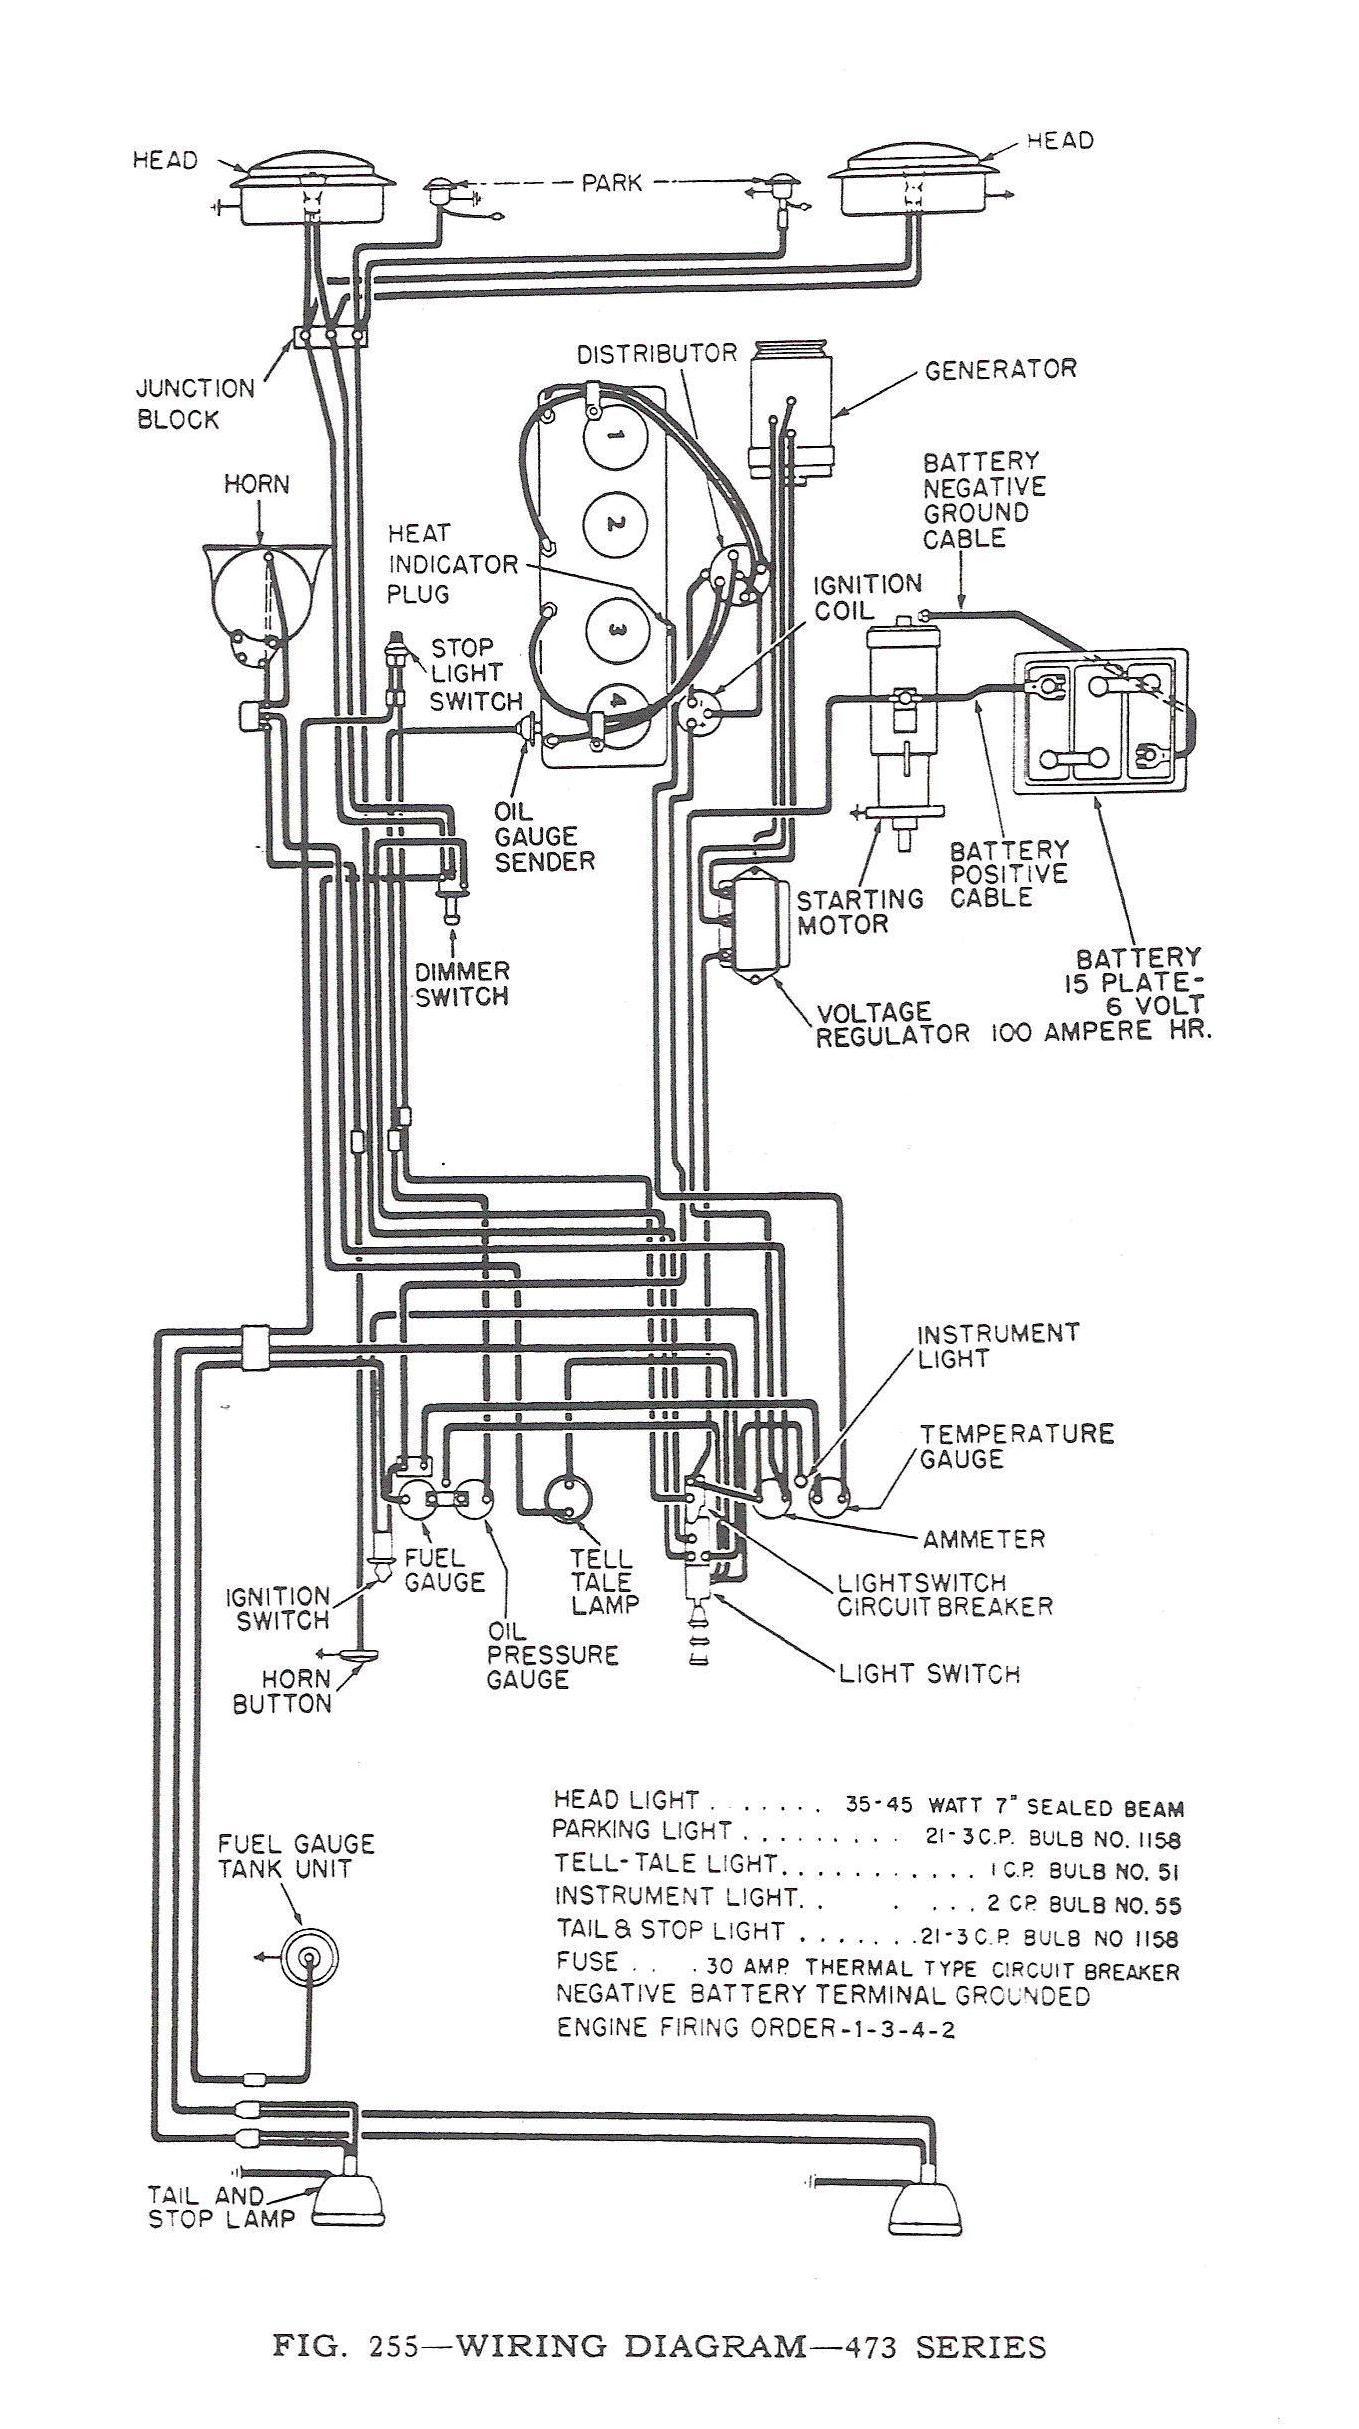 1946 willys jeep wiring wiring diagram1952 jeep series 473 wiring diagrams google search sathya